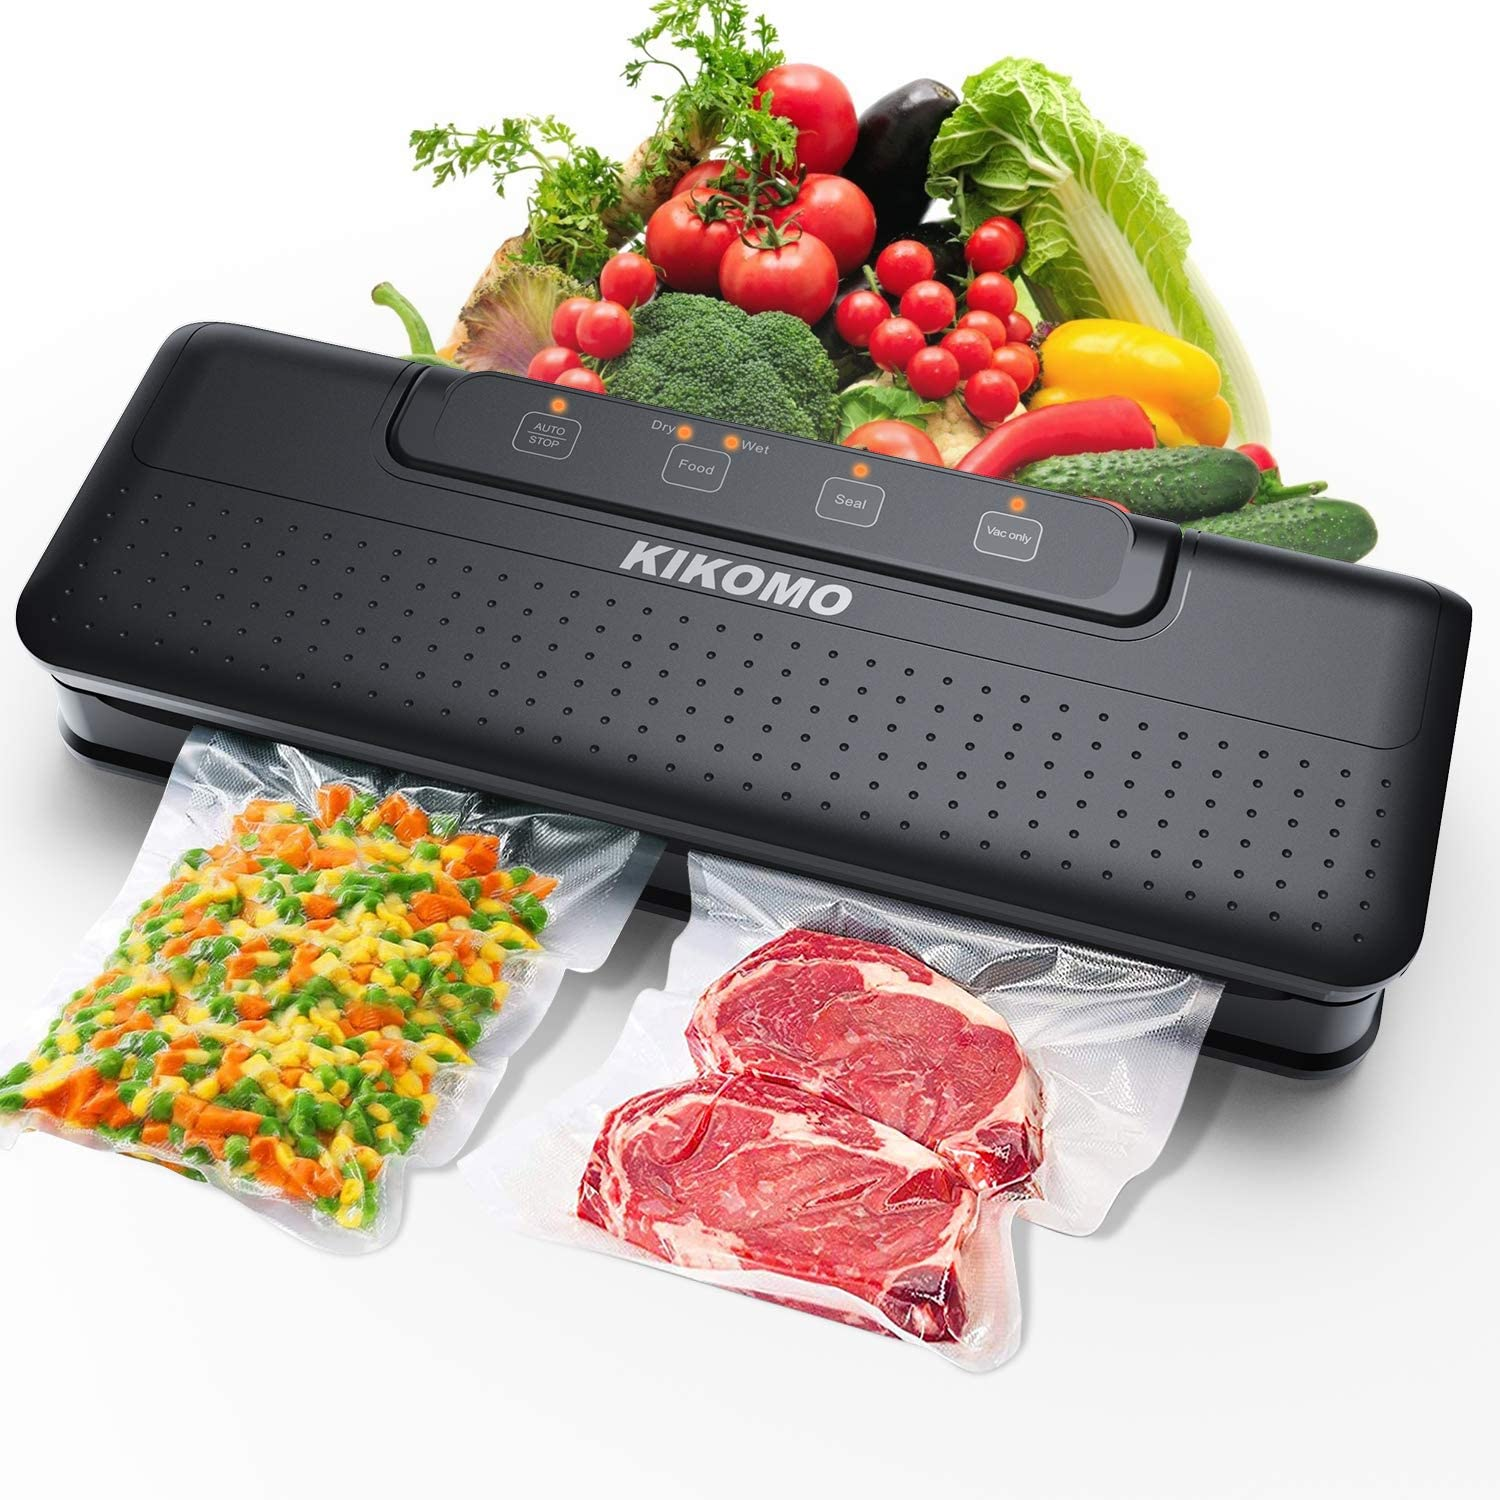 【Upgrade Dual Pumps】Vacuum Sealer Machine, KIKOMO Automatic Food Saver with Air Sealing System |One-Touch Operation |Led Indicator Lights |Dry Moist Food Modes |Starter Kit |15 Vacuum Bags |2 Gaskets